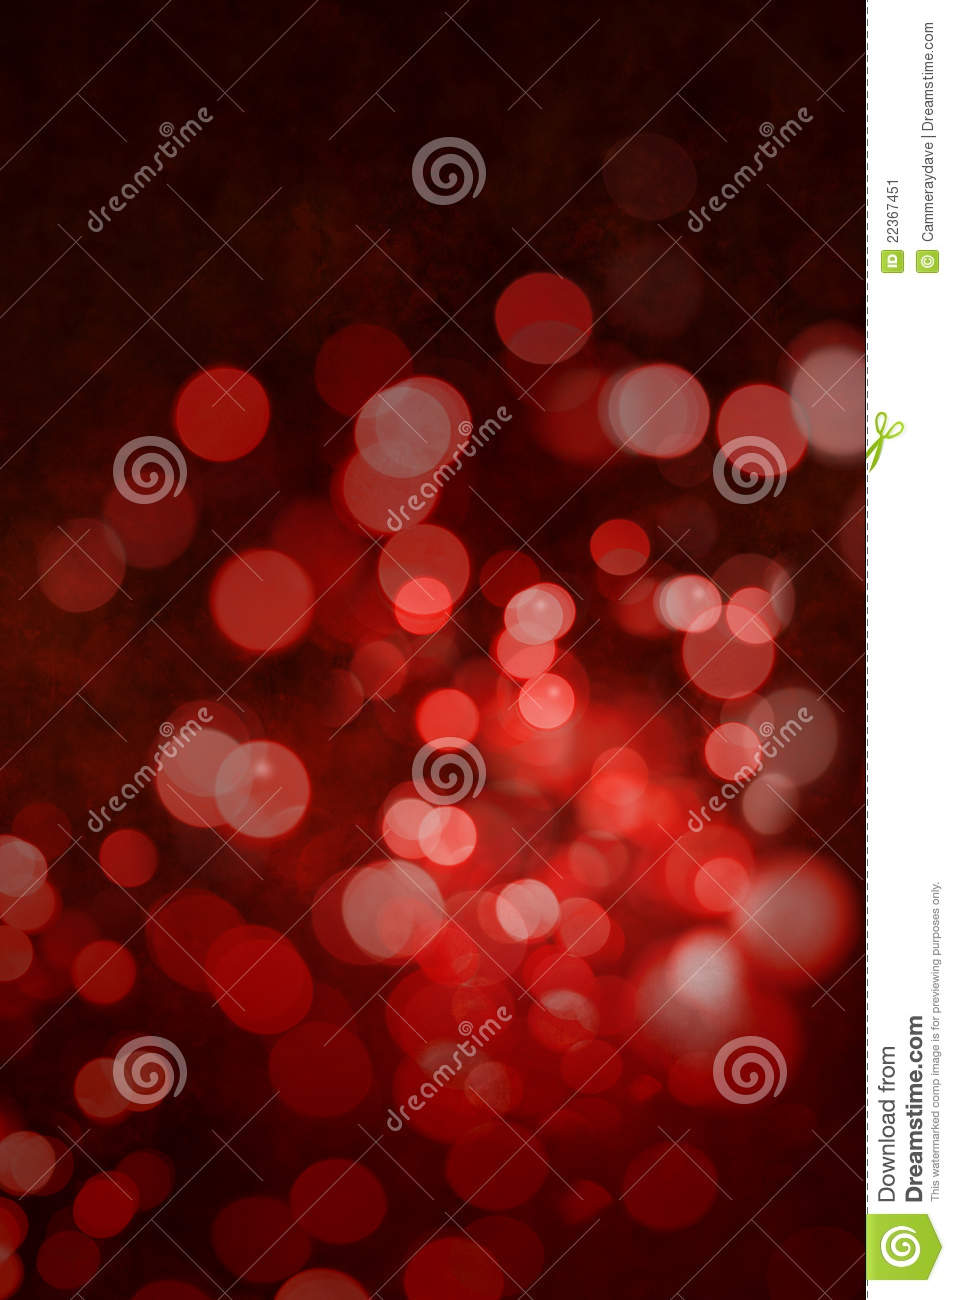 Red Christmas Lights Abstract Background Stock Image ...